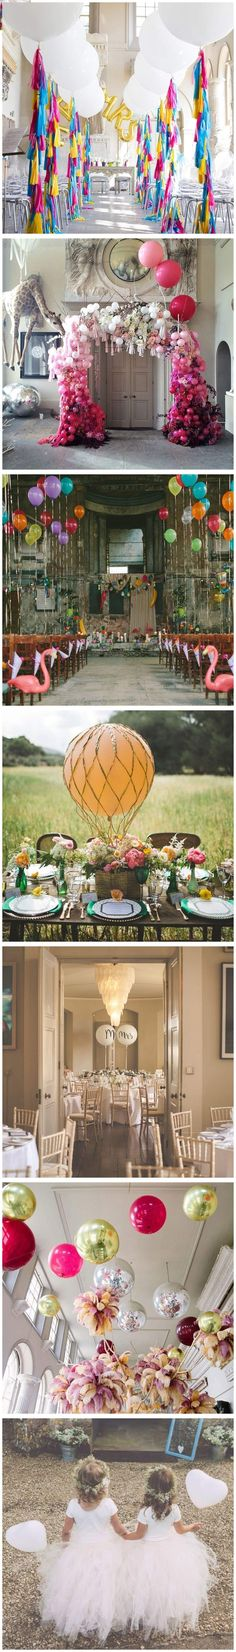 We're obsessed with wedding balloons as the perfect flourish to your wedding decor. Think balloon statement ceilings and canopies, confetti balloons for flower girls, balloon centrepieces, aisle decoration, wedding favours, balloon arches and portrait props. There's so many ways to use wedding balloons! #balloons #weddingdecor #weddingballoons